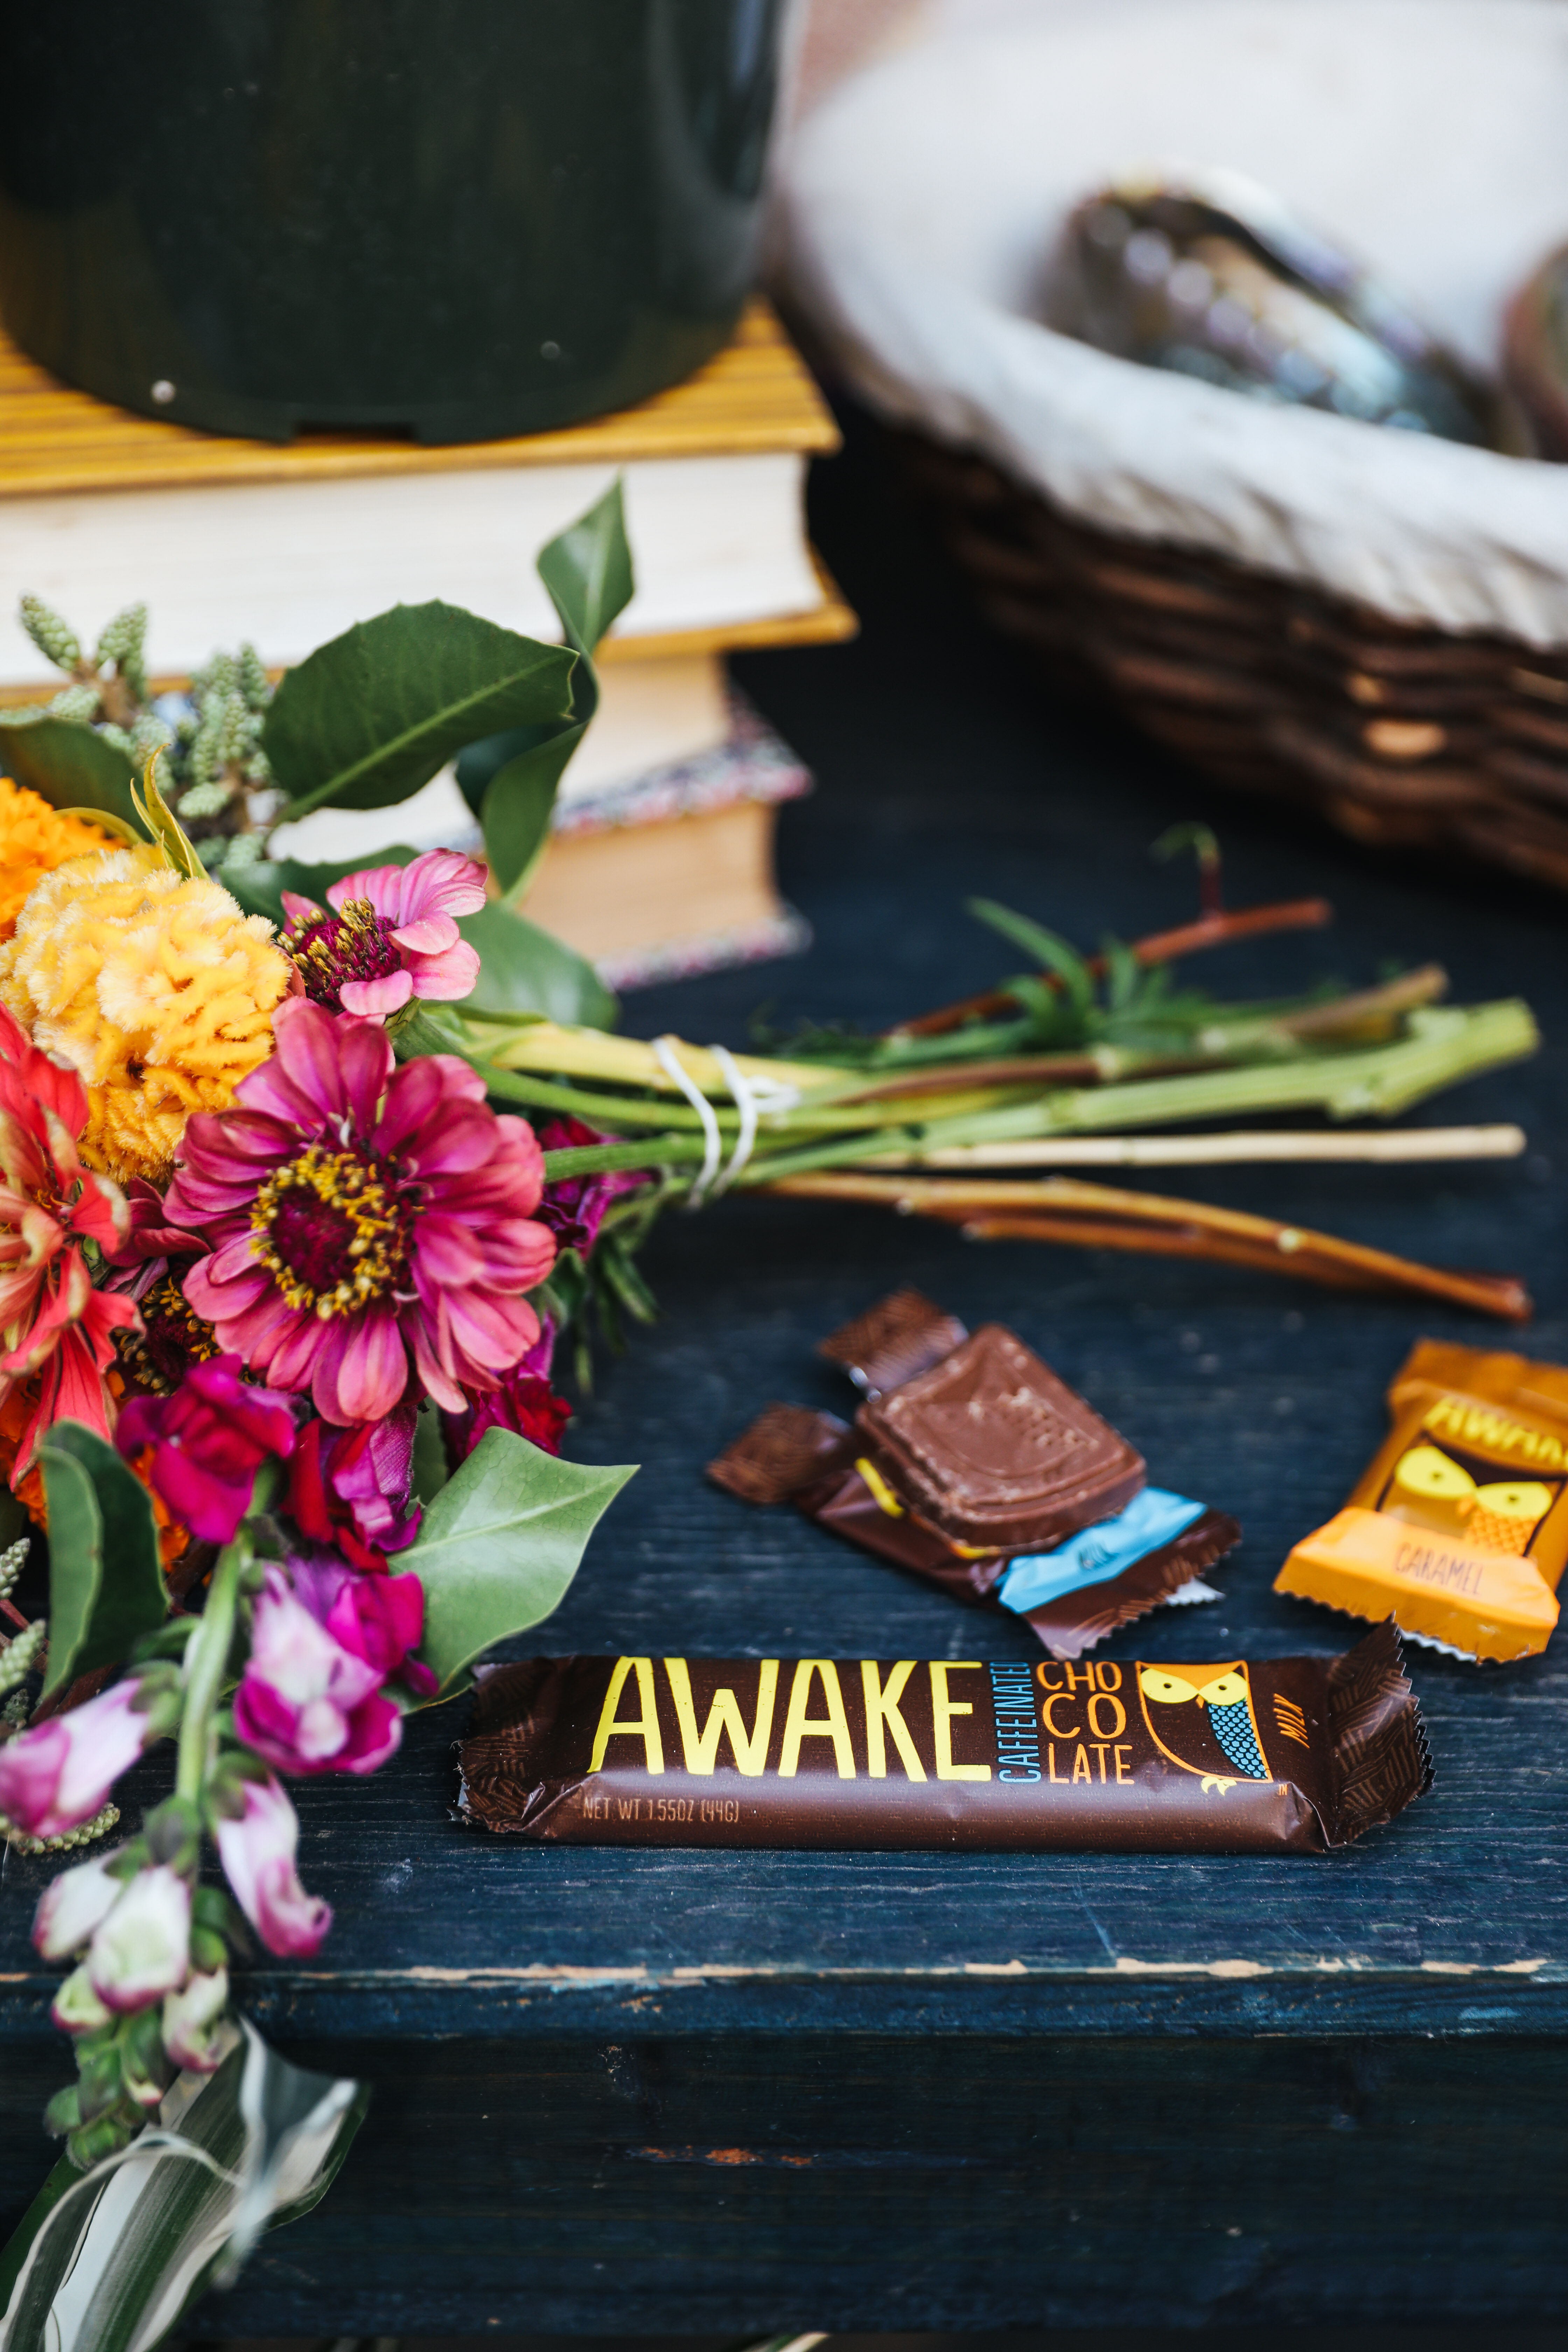 5 Ways to Make Your Monday Better with AWAKE Chocolate.